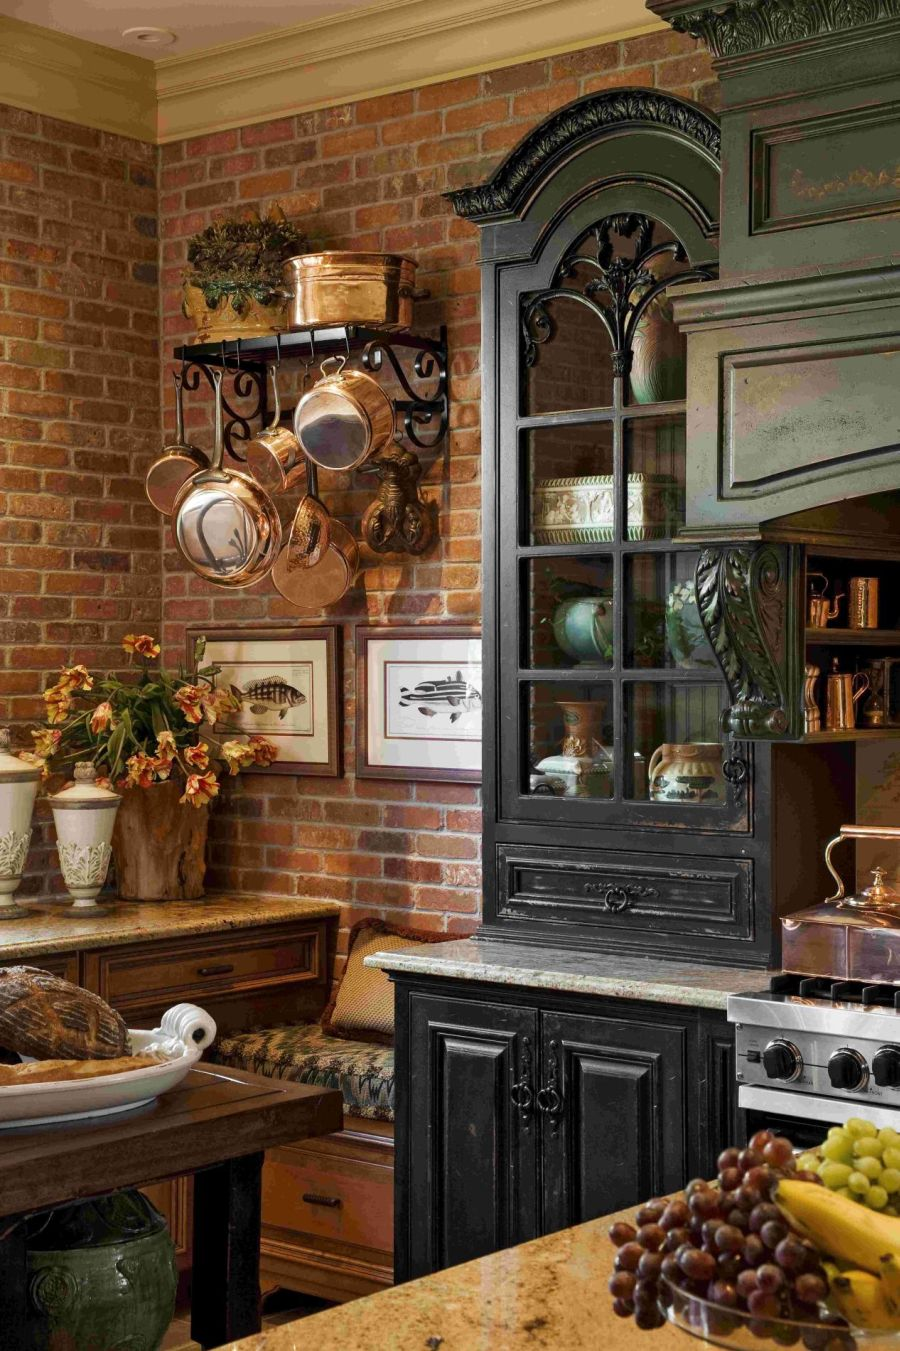 french country kitchen country kitchen design ideas Home Decorating Trends Homedit